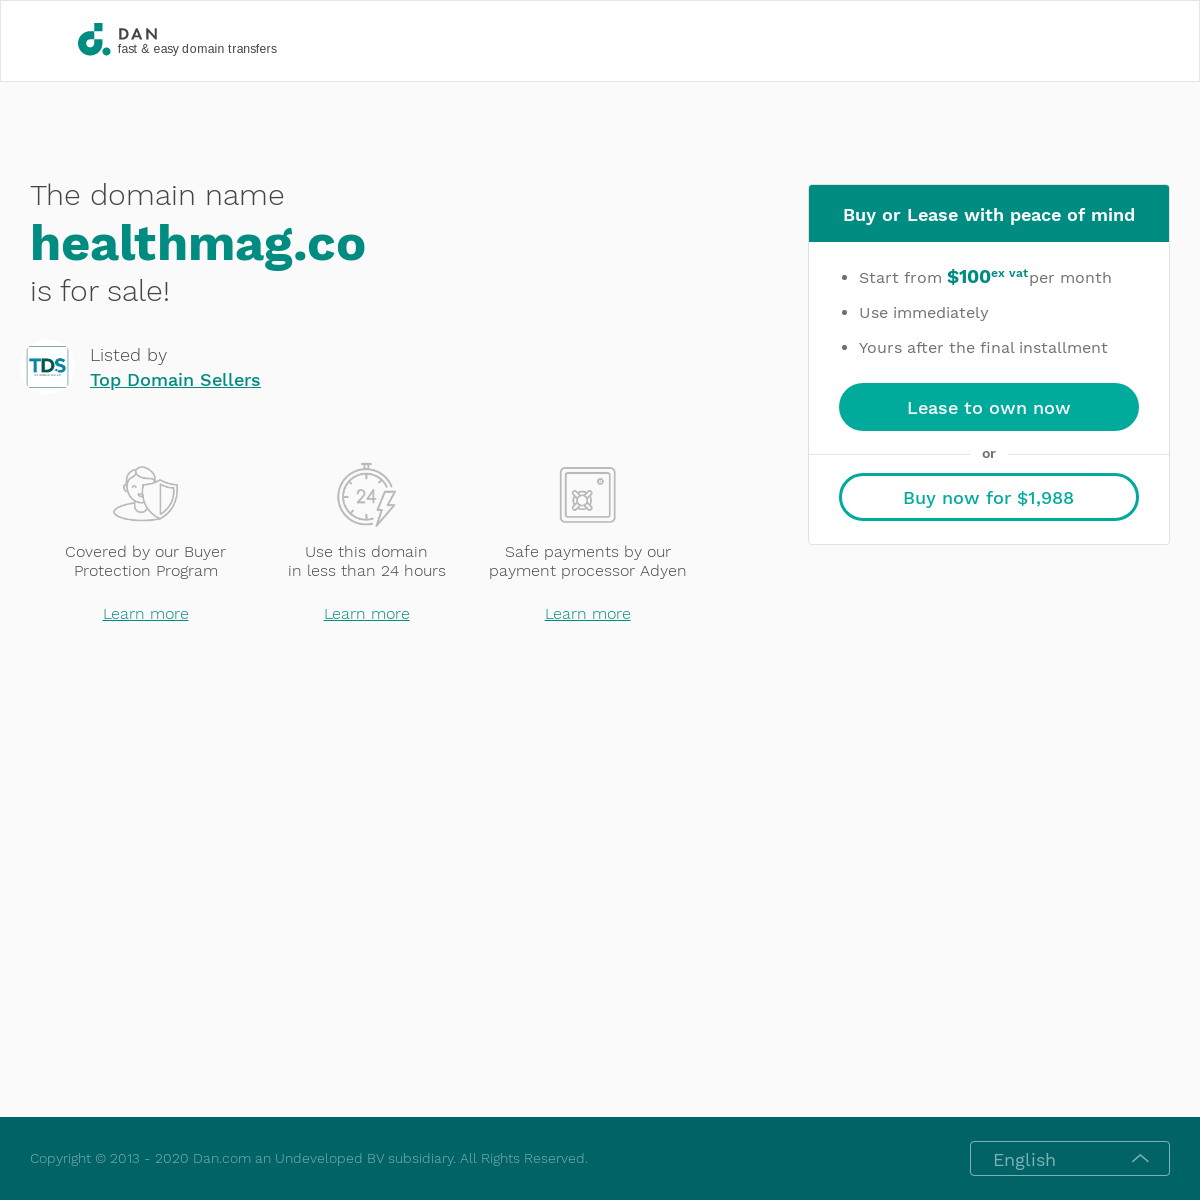 The domain name healthmag.co is for sale